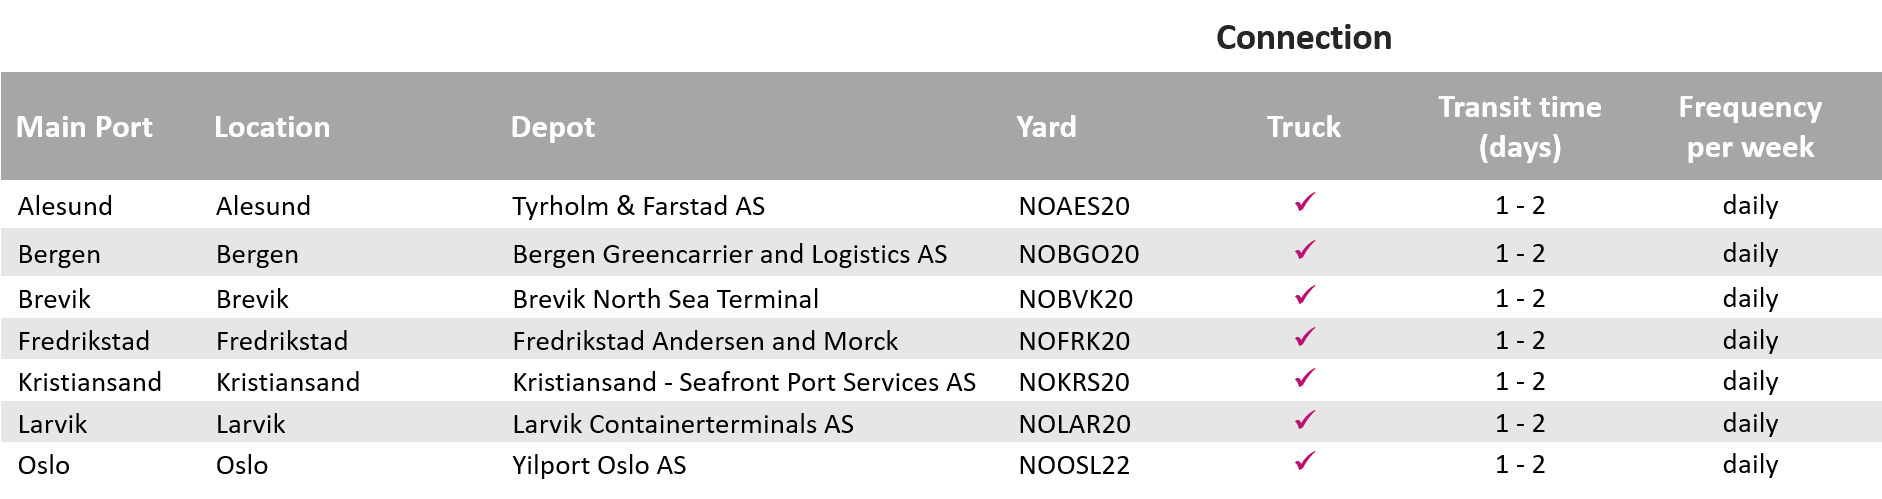 Carrier haulage depots and transit times_Norway